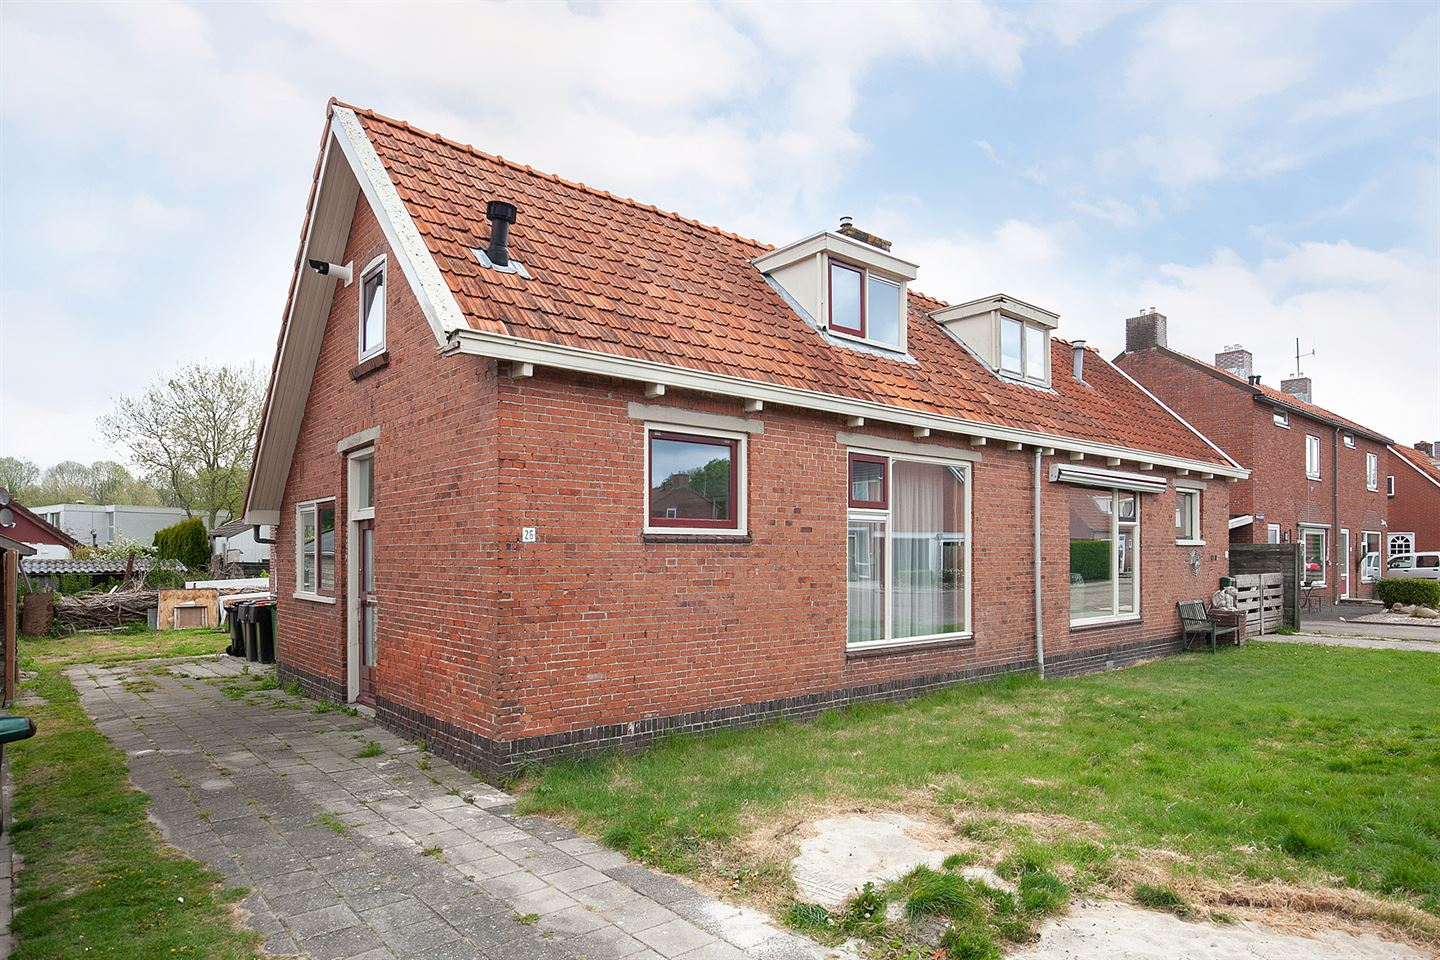 View photo 1 of Parallelweg 26